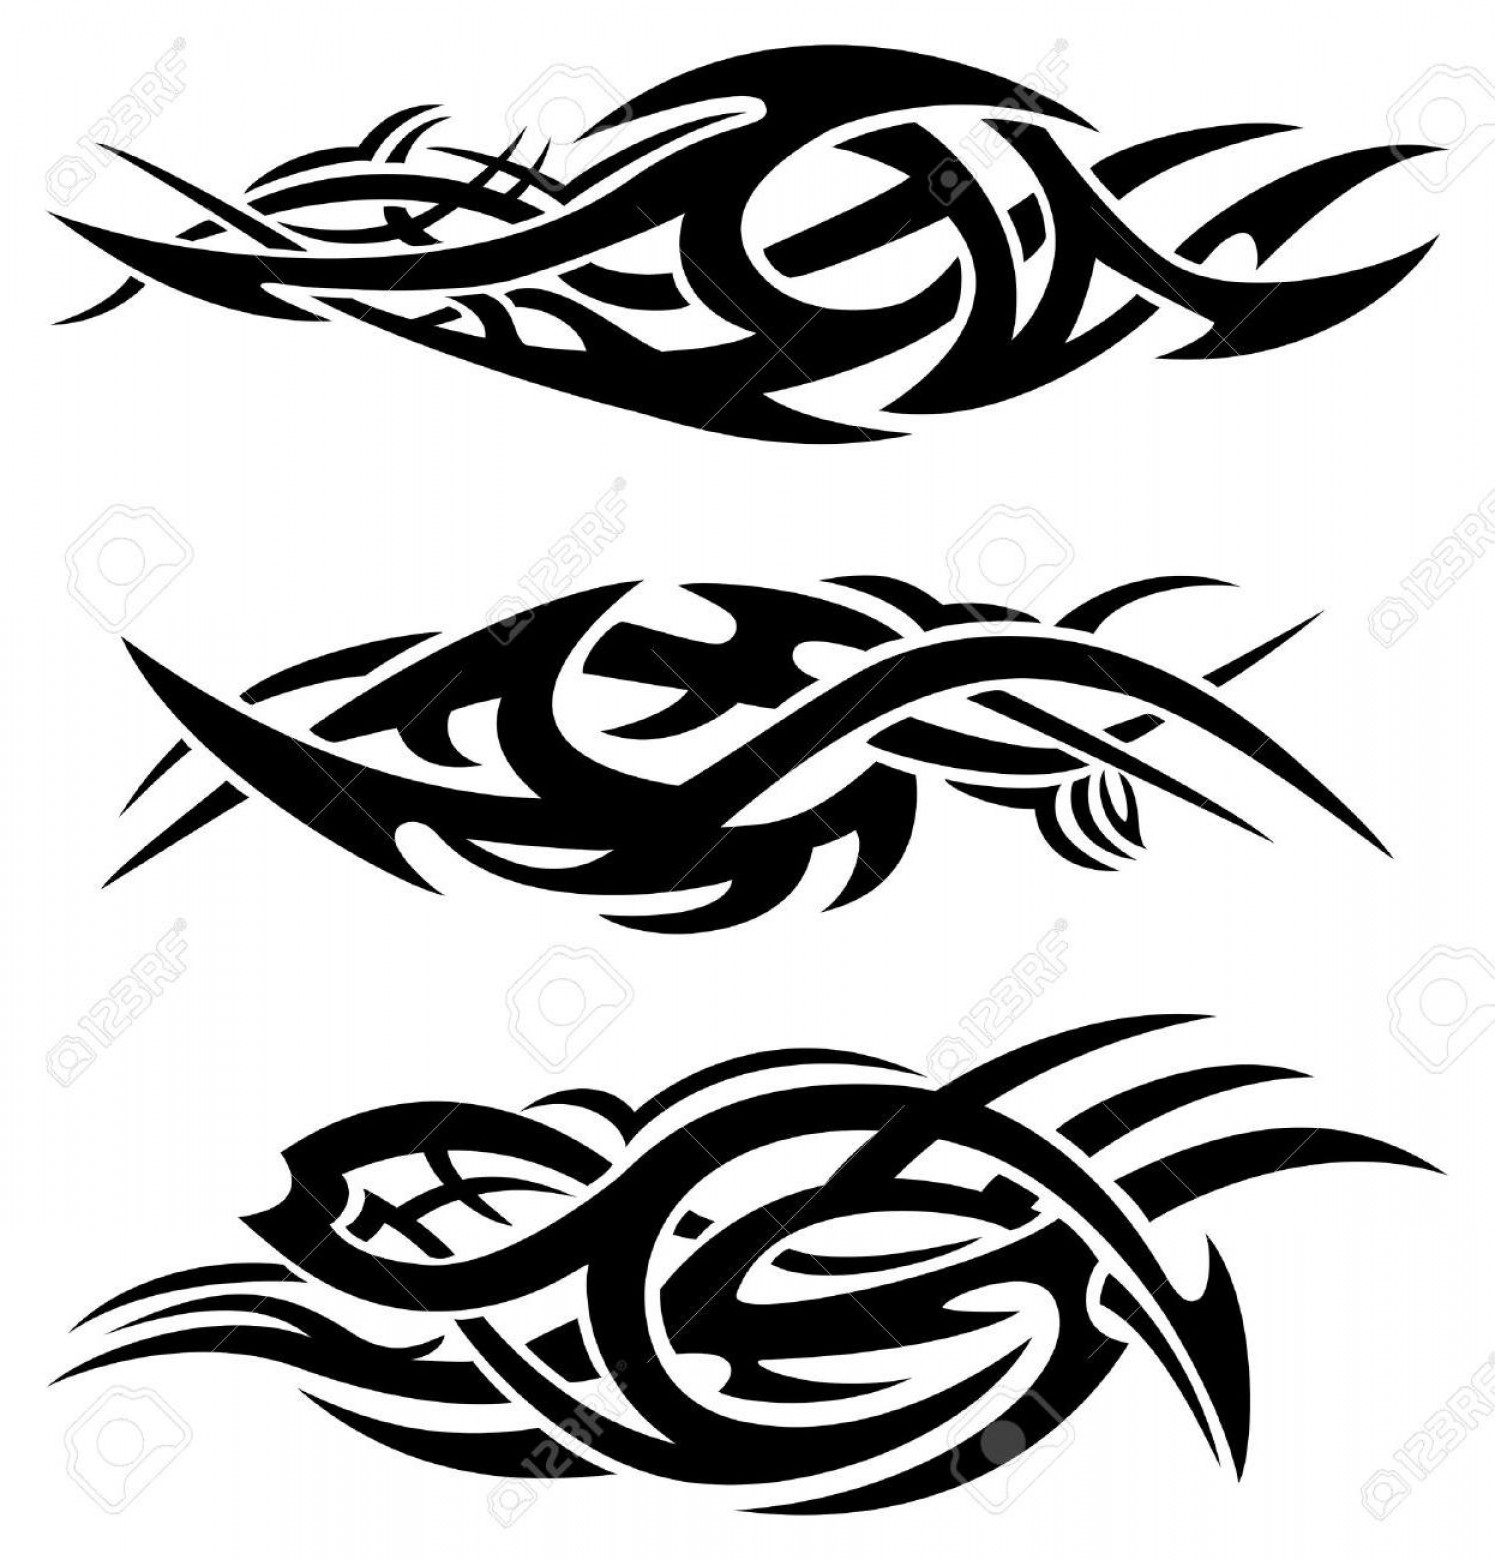 Tribal Flames Vector Car: Best Free Tribal Flame Designs Vector Image